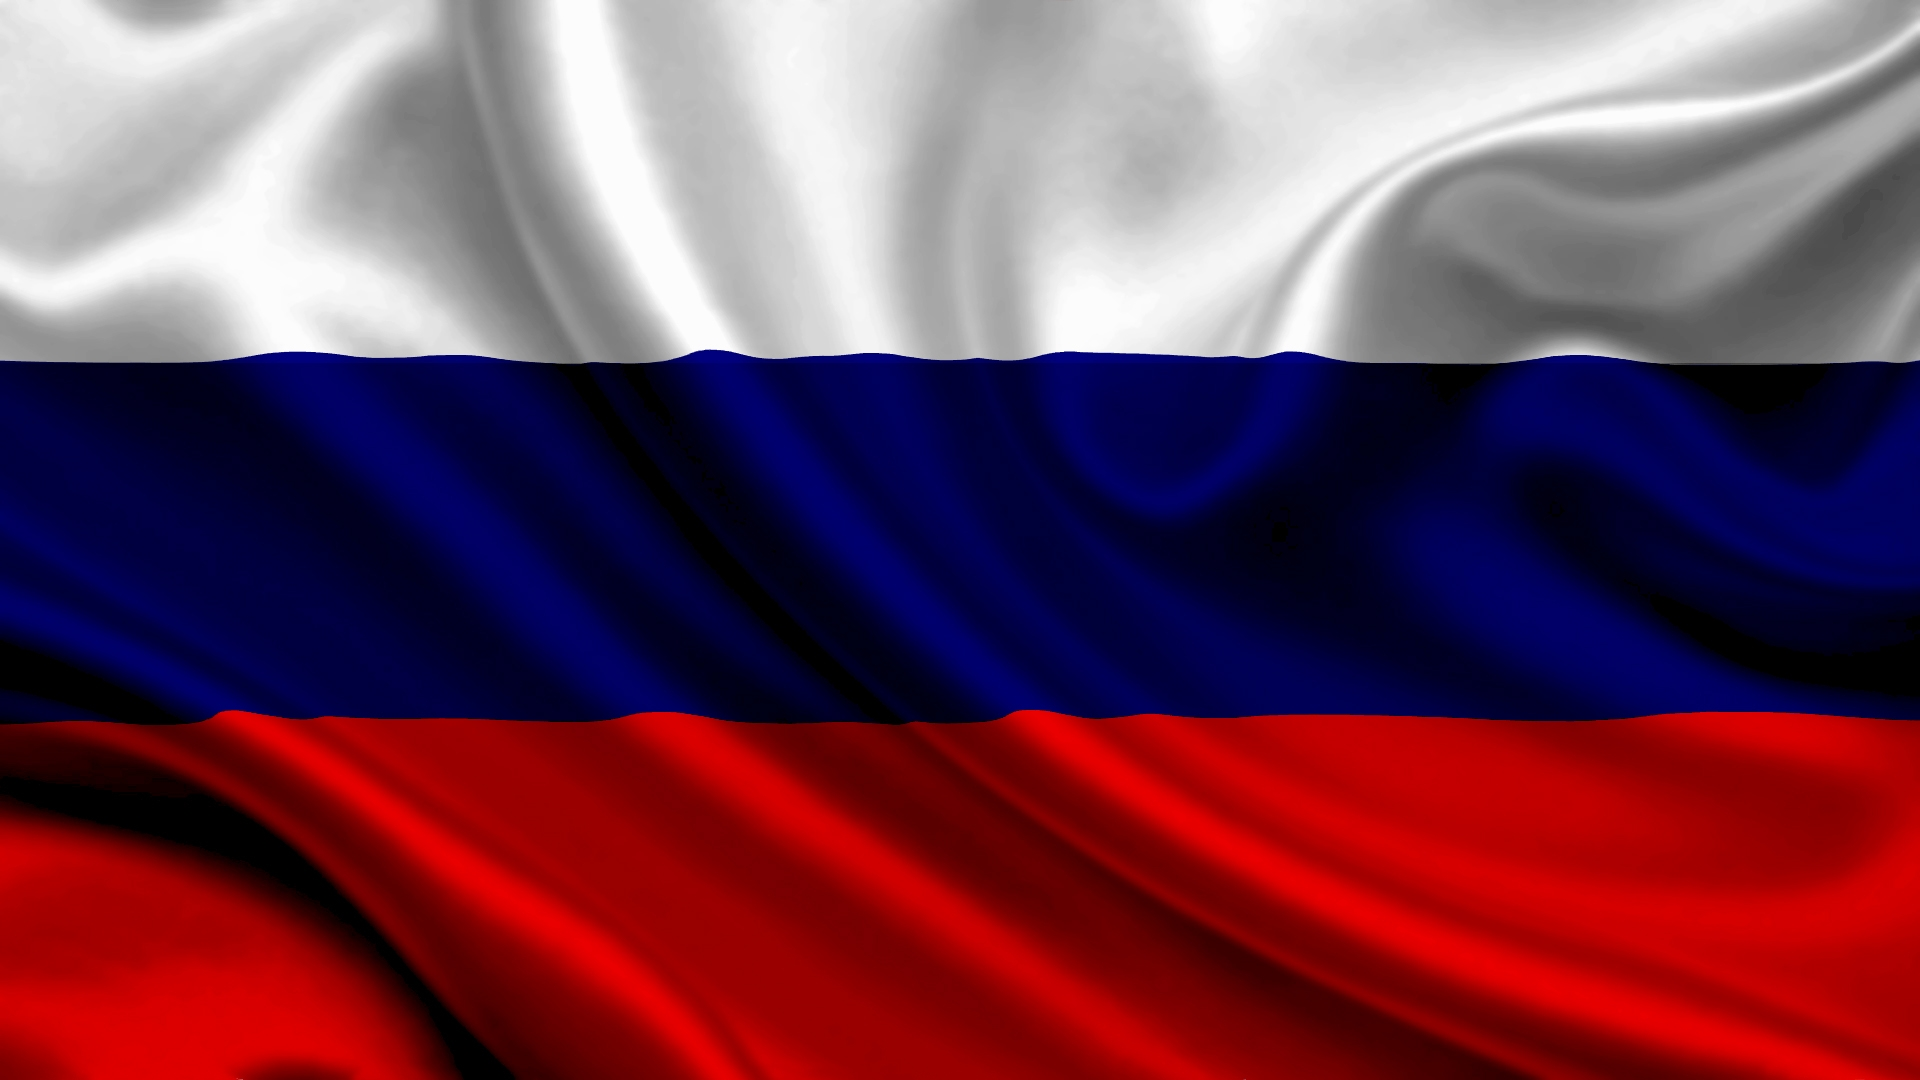 Full HD 1080p Russia Wallpapers Desktop Backgrounds 1920x1080